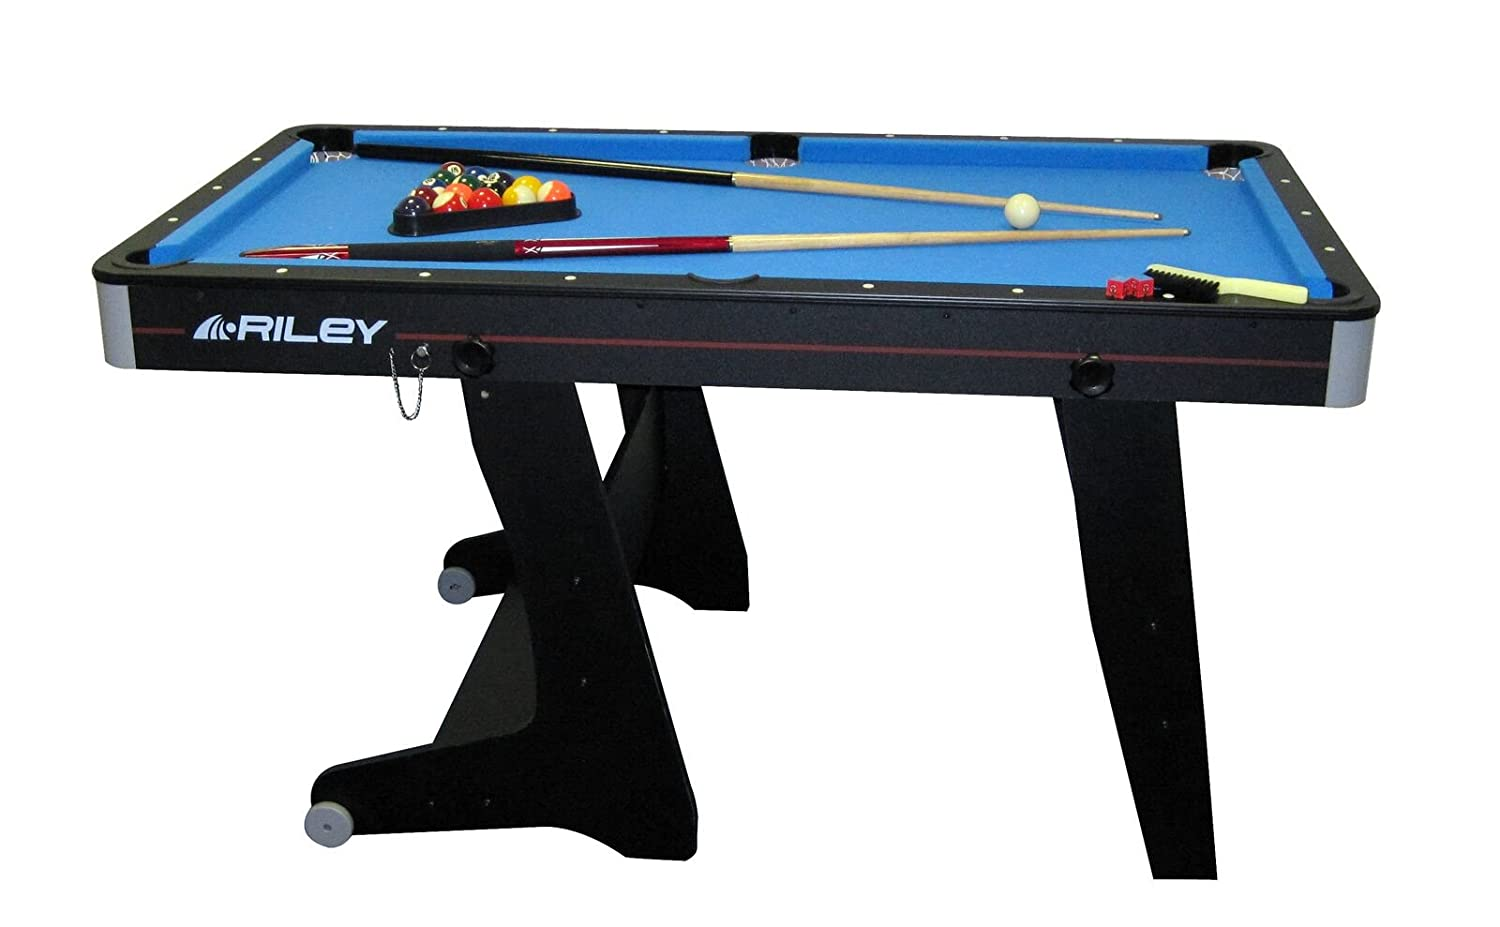 Riley 5 Ft Folding Domestic Pool Table   Black: Amazon.co.uk: Sports U0026  Outdoors